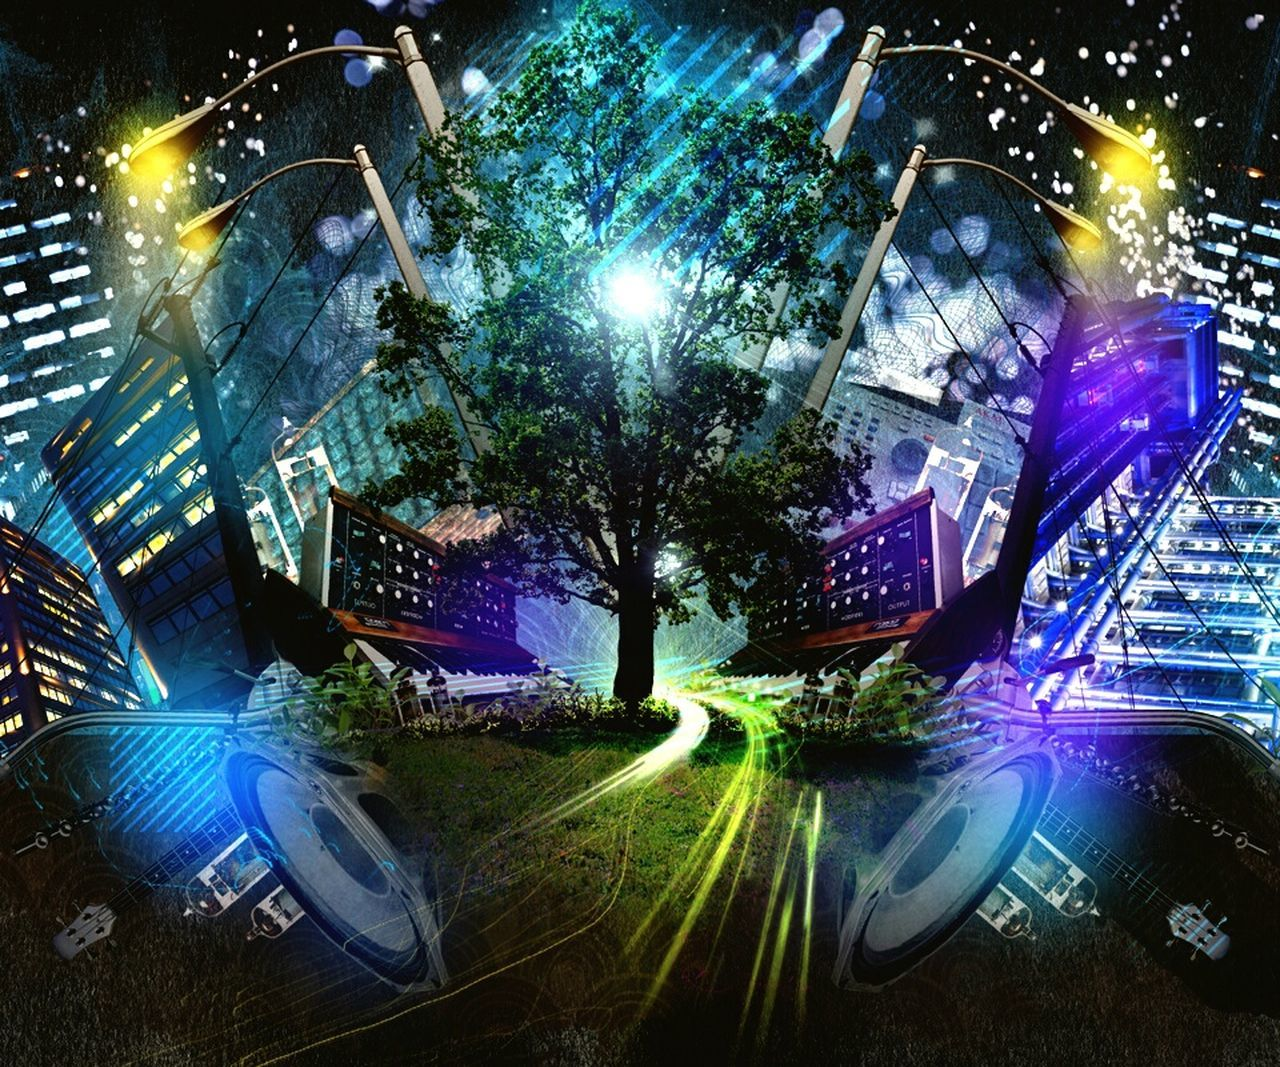 illuminated, night, lens flare, outdoors, no people, low angle view, architecture, technology, tree, futuristic, city